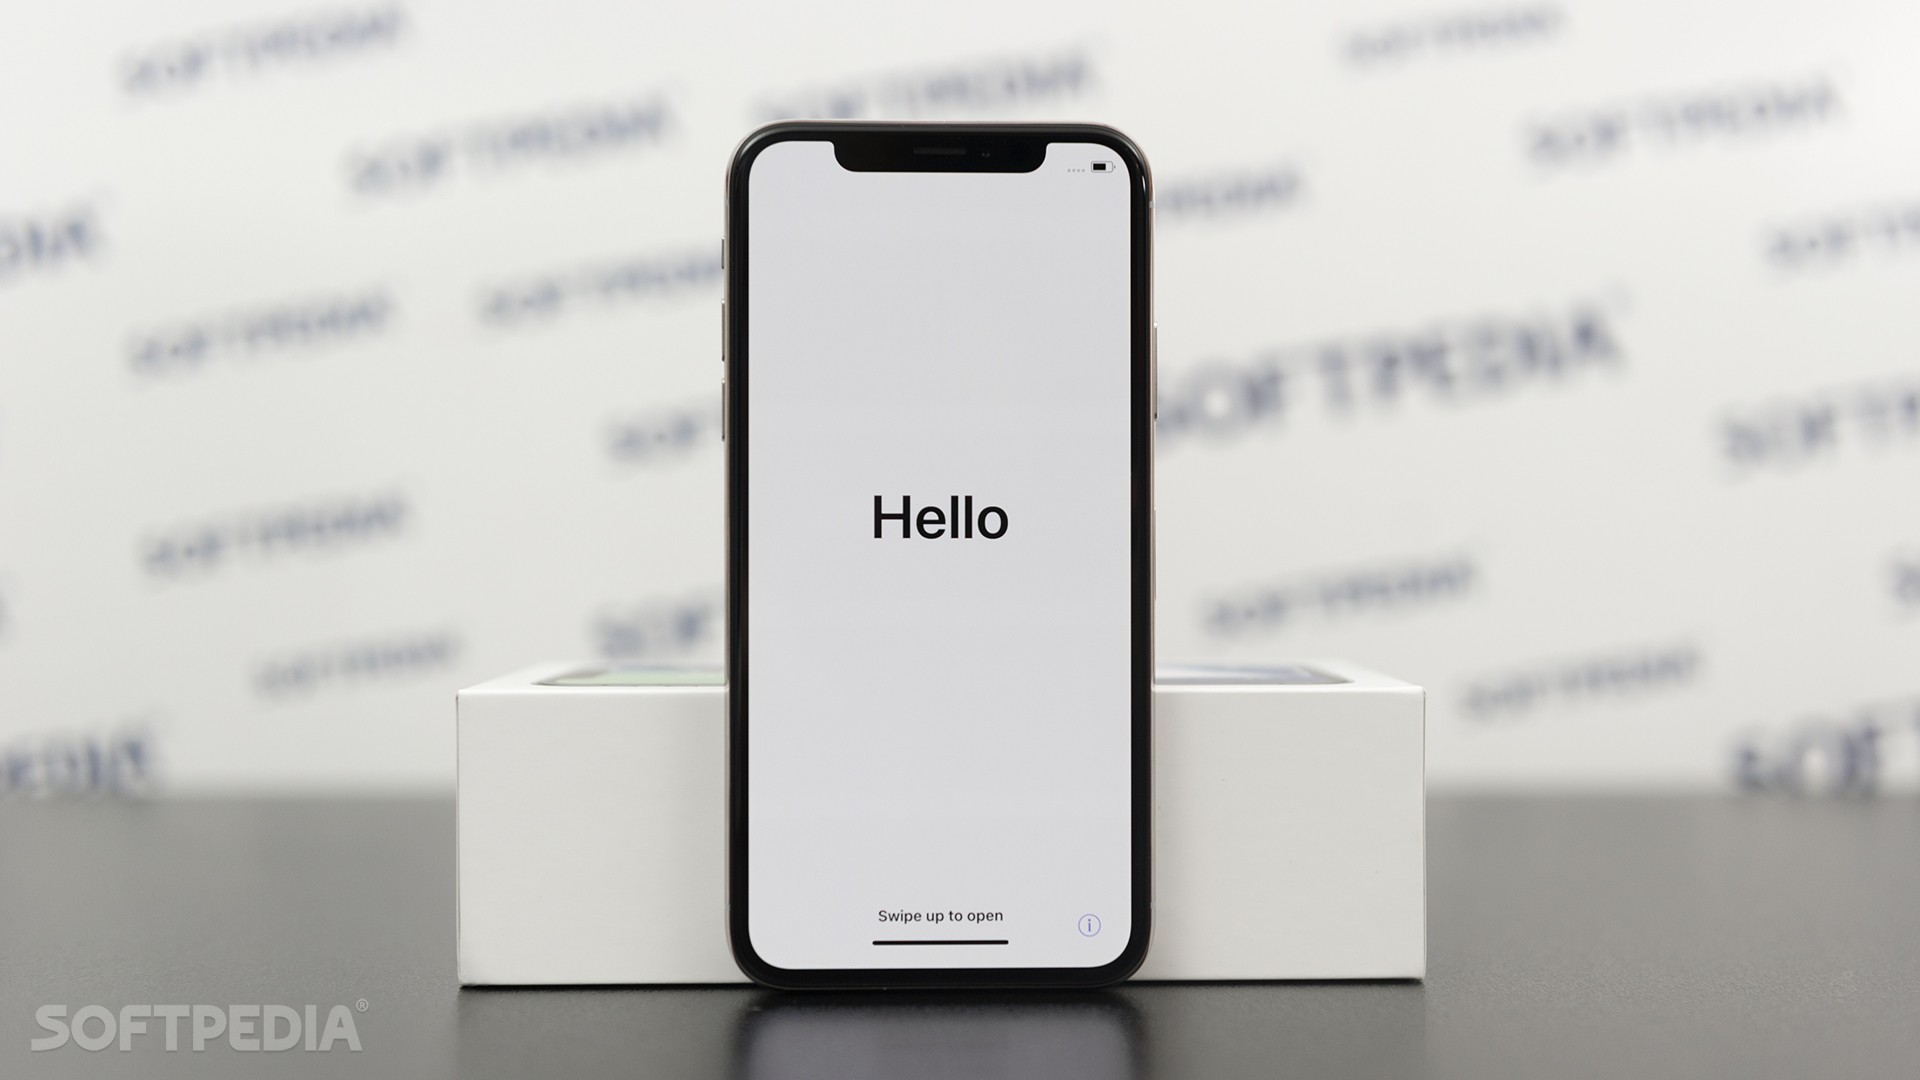 Apple CEO Defends iPhone X 9301aebde1